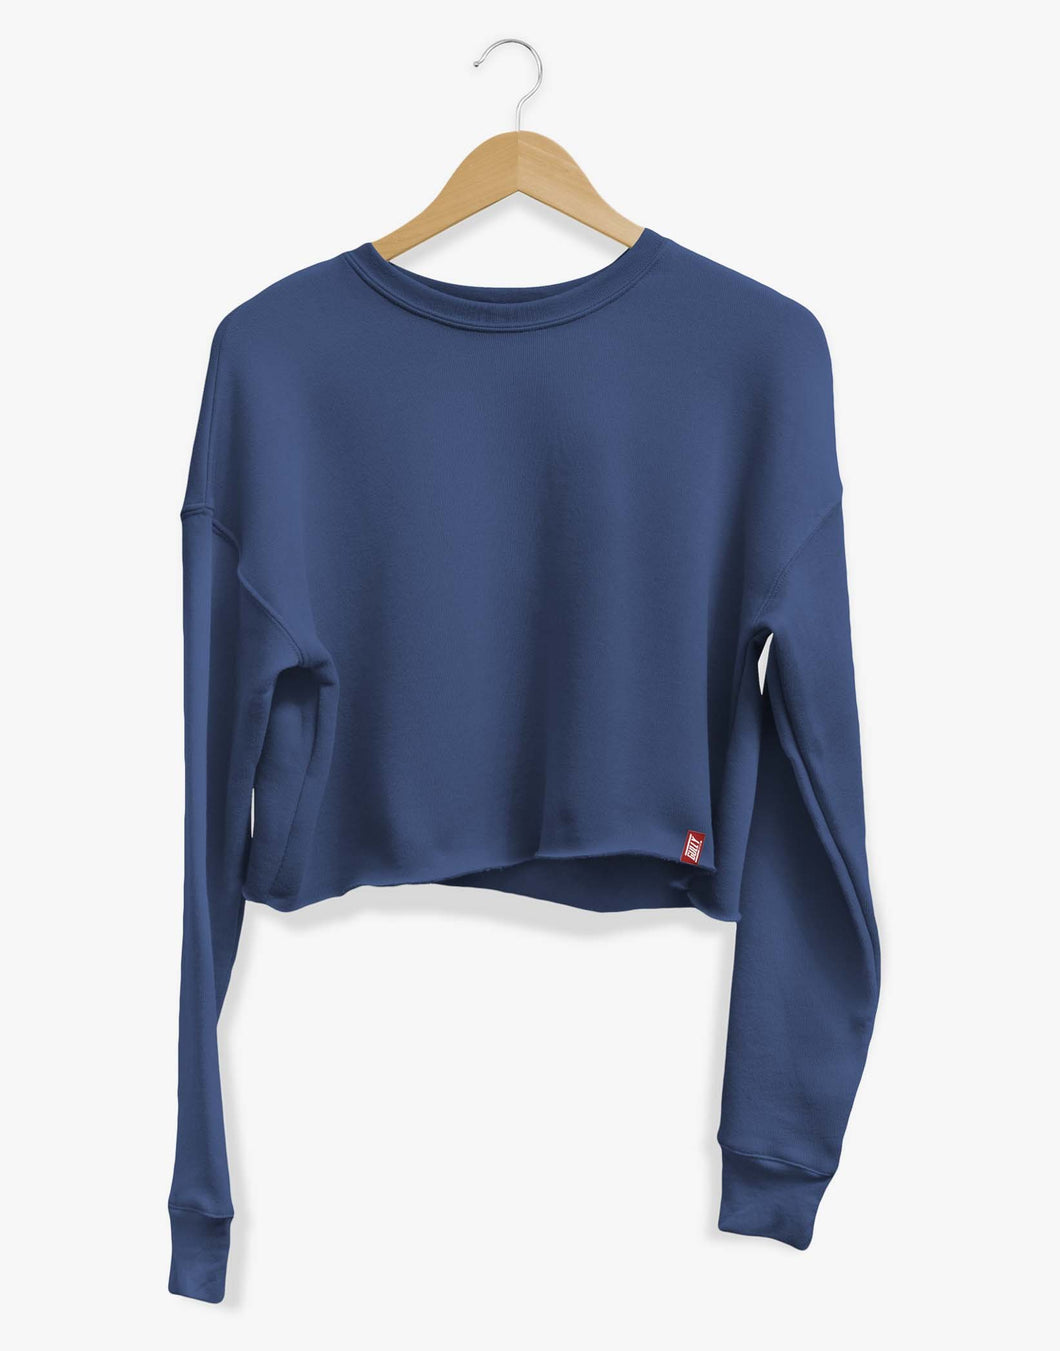 Gals Crop Sweatshirt (Blue)